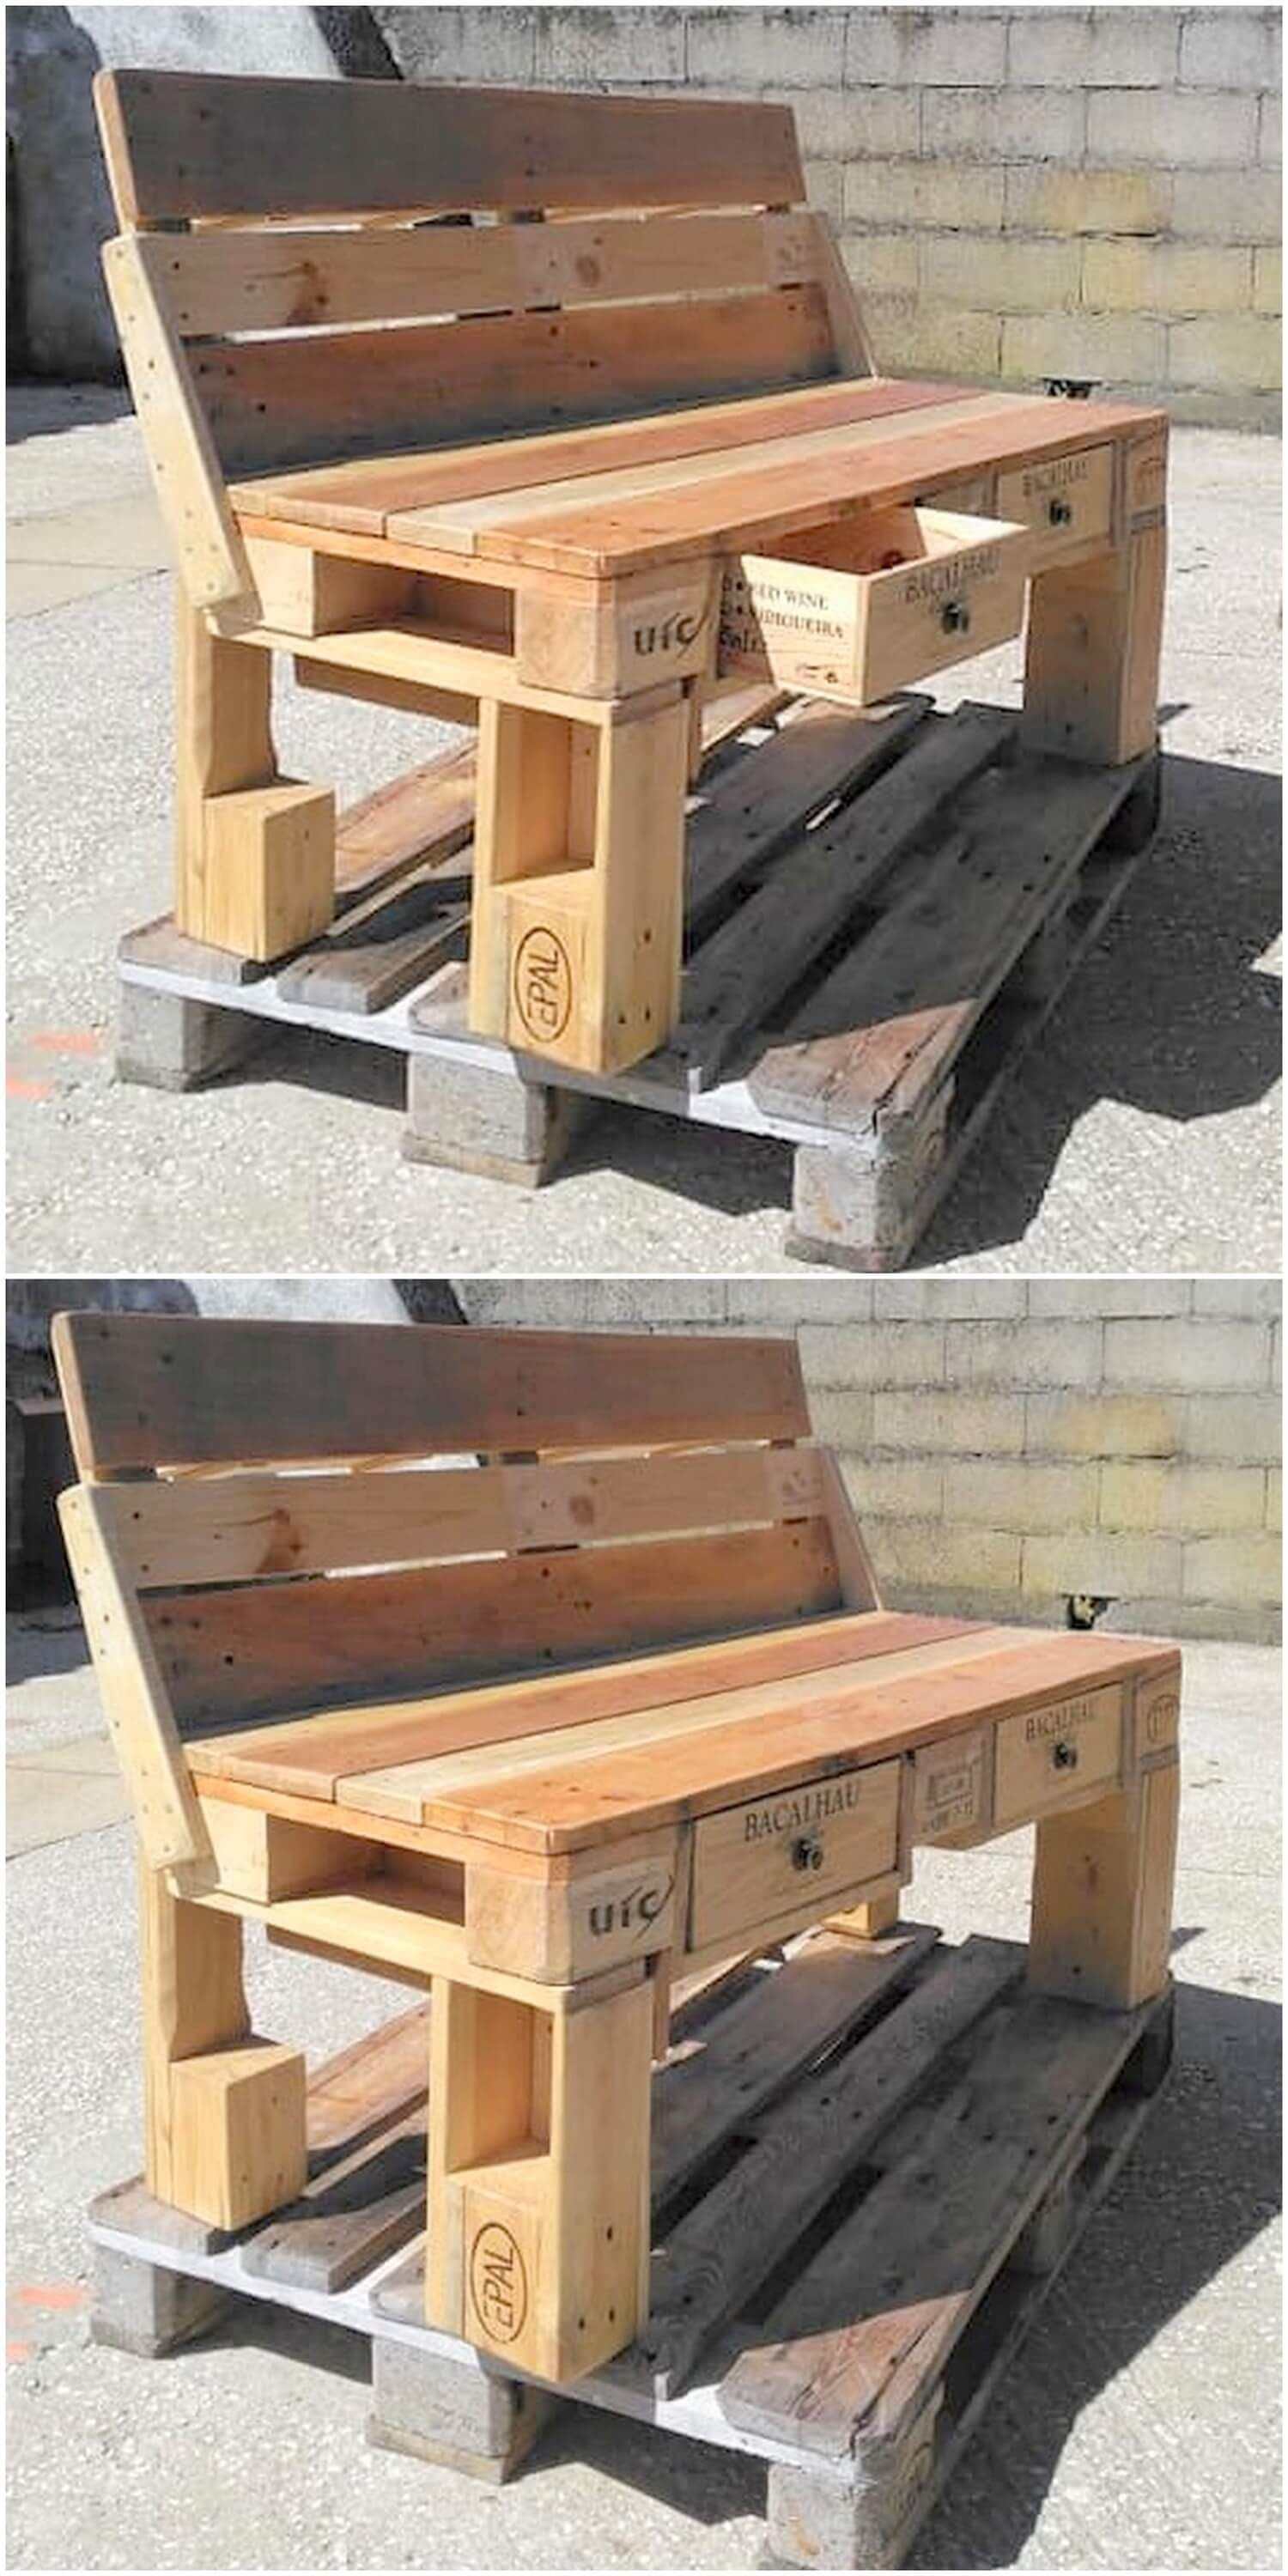 Adorable Diy Ideas For Shipping Pallets Reusing Pallet Diy Wood